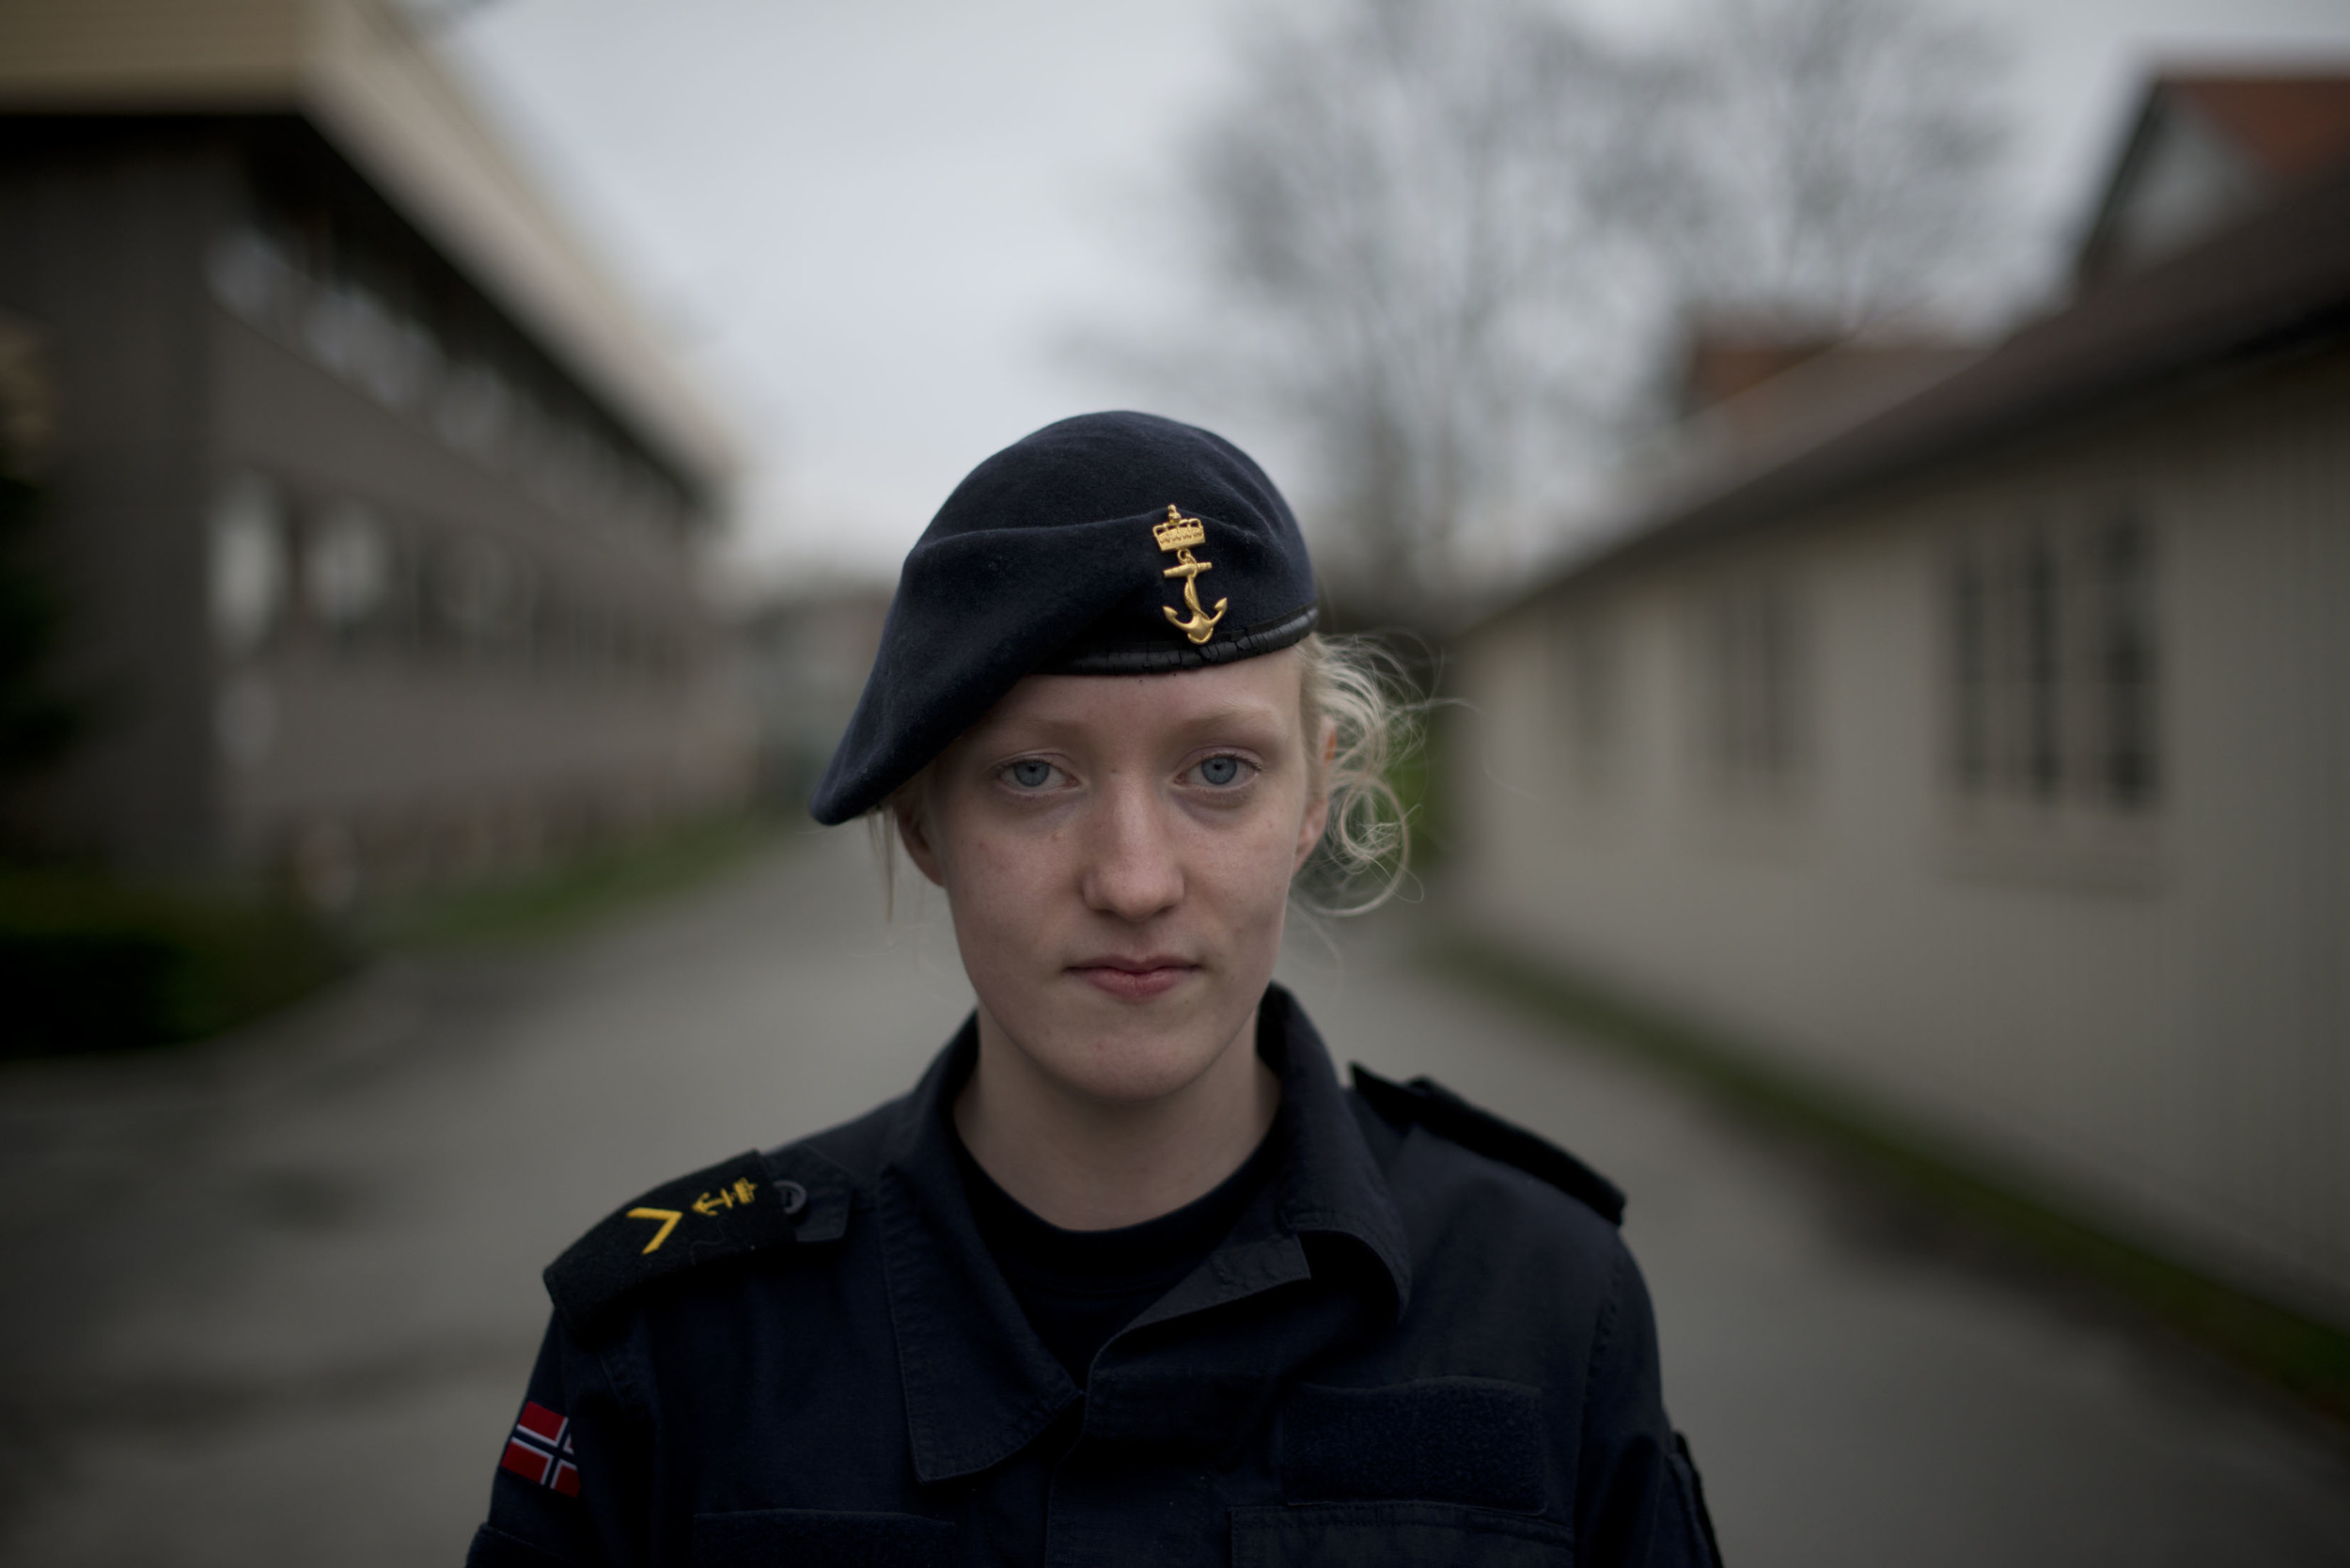 Marita Frafjord is trainee at Fokus, en education center for those conscripted for military service, and people working for the Norwegian Armed Forces. She has to wear uniform at work, has a room in the camp. In the weekends, she drives home to the farm.